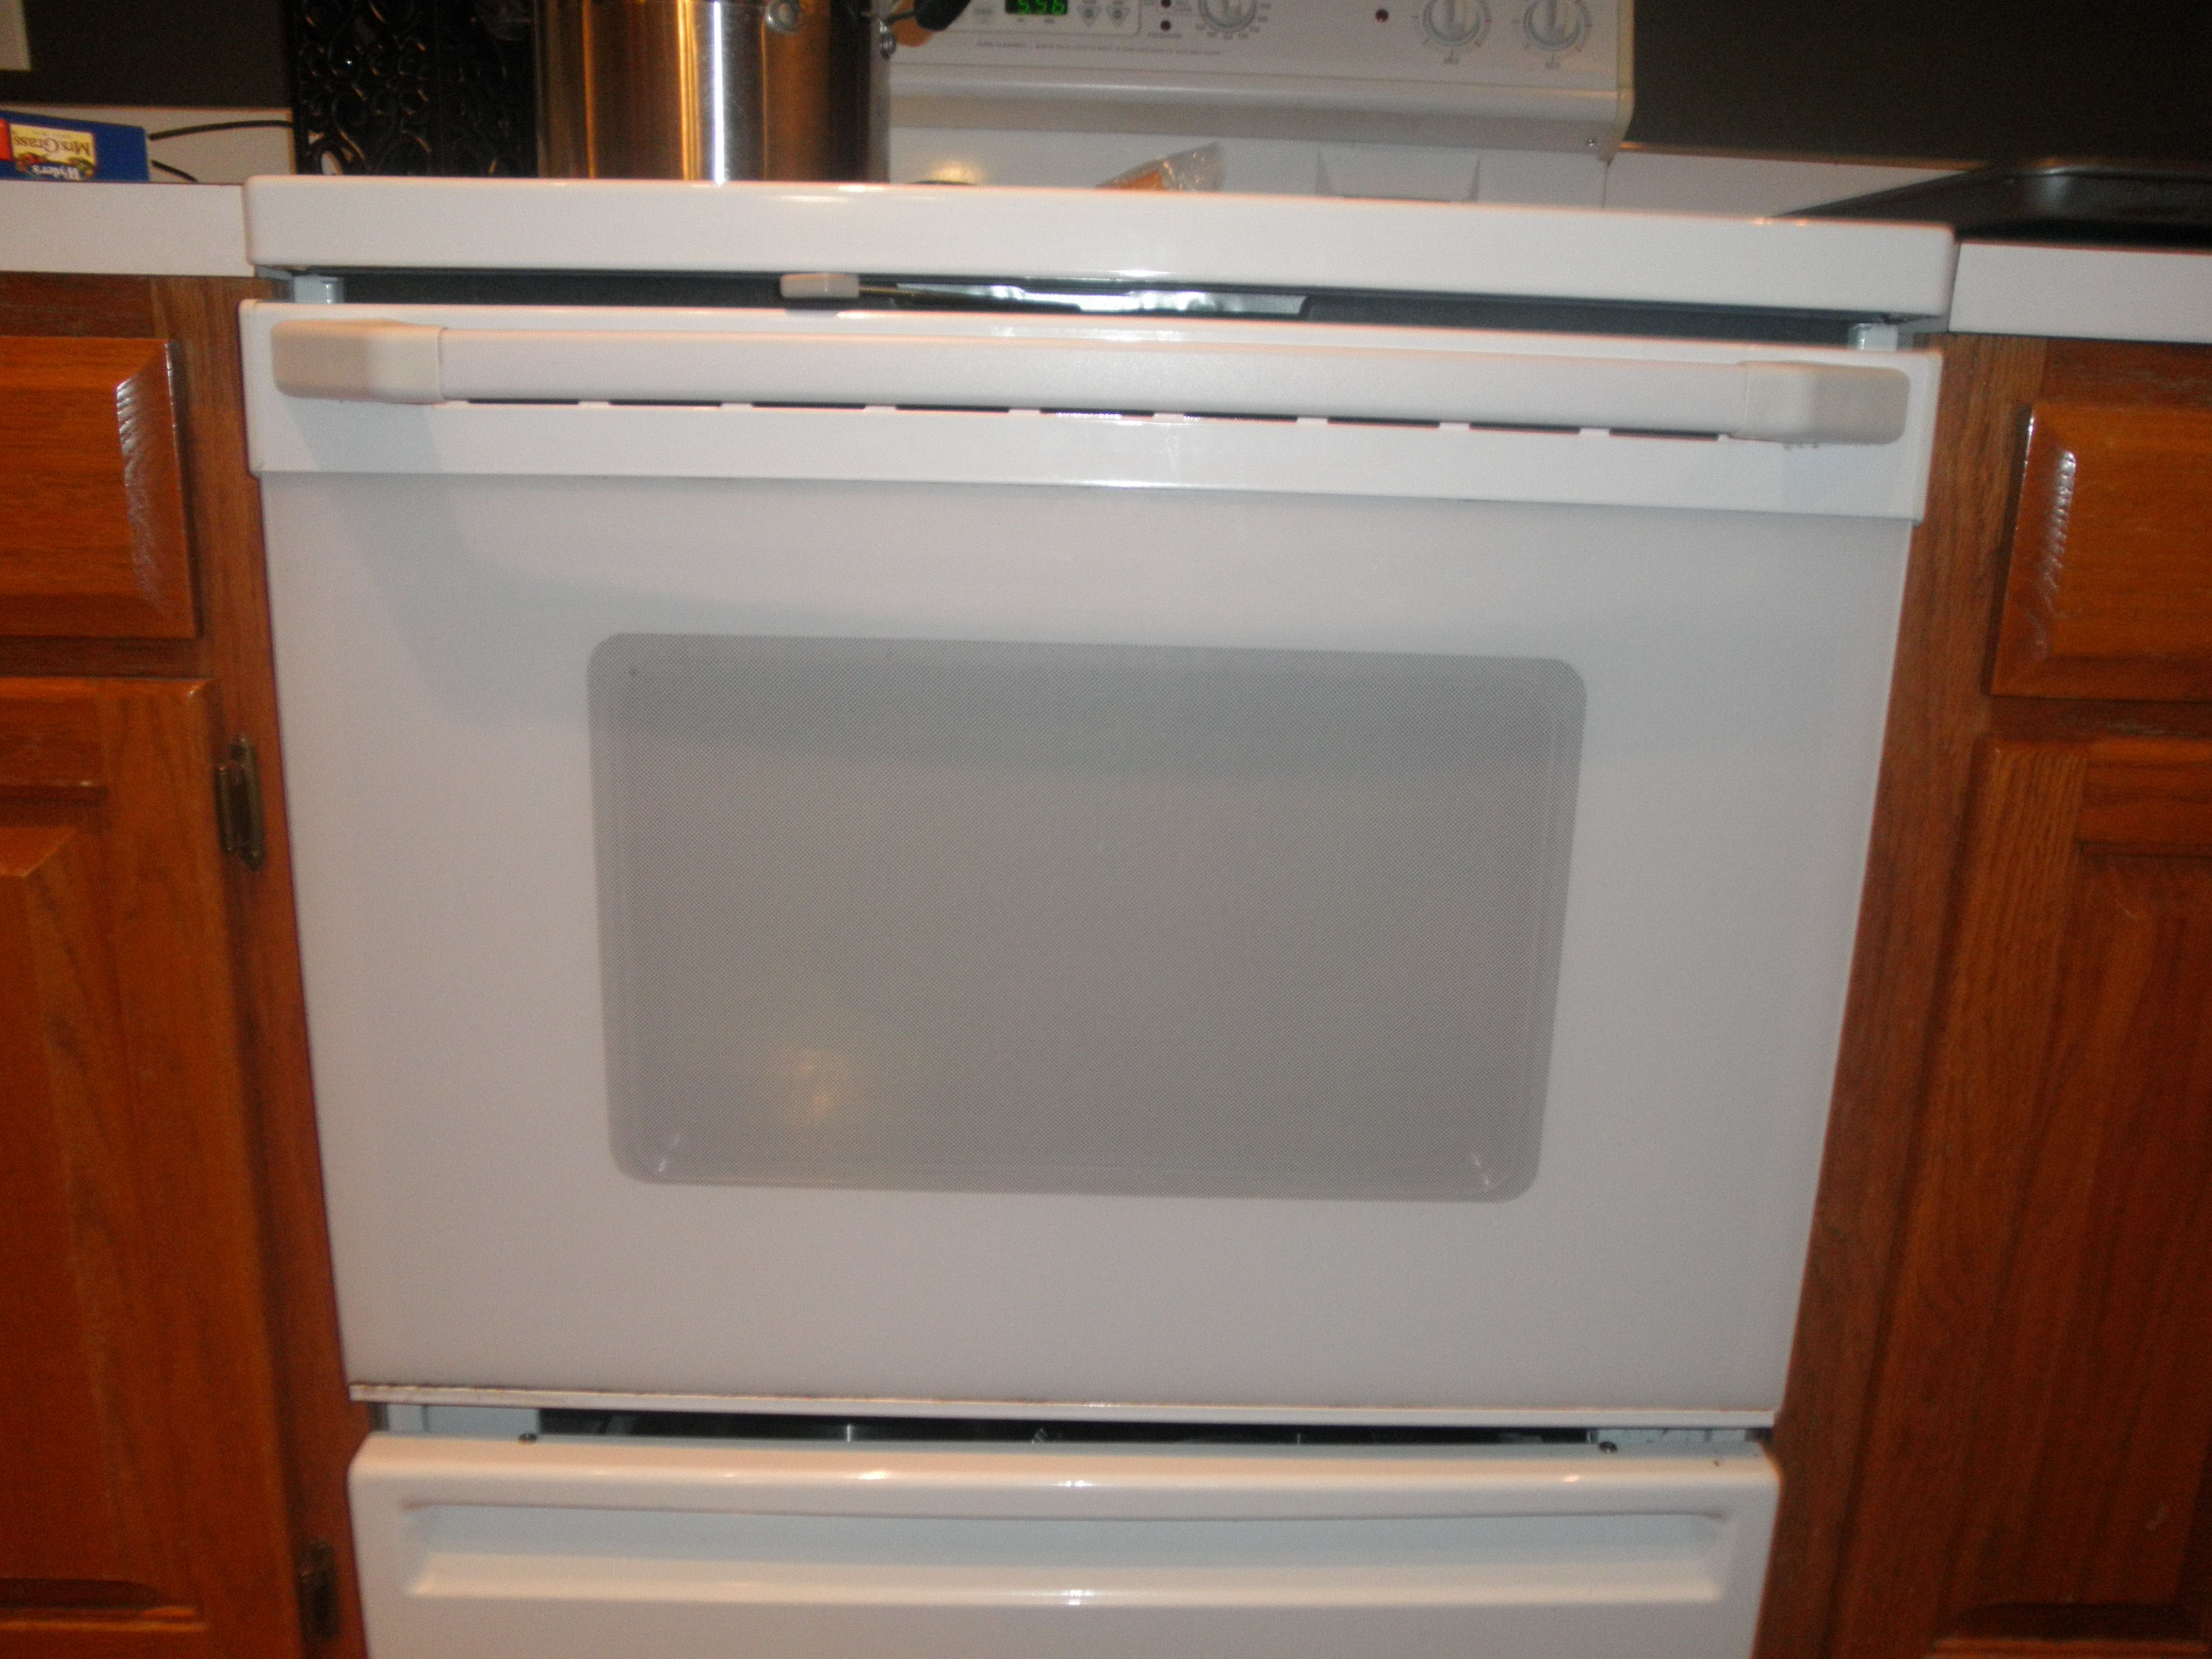 images?q=tbn:ANd9GcQh_l3eQ5xwiPy07kGEXjmjgmBKBRB7H2mRxCGhv1tFWg5c_mWT How To Remove My Oven Door